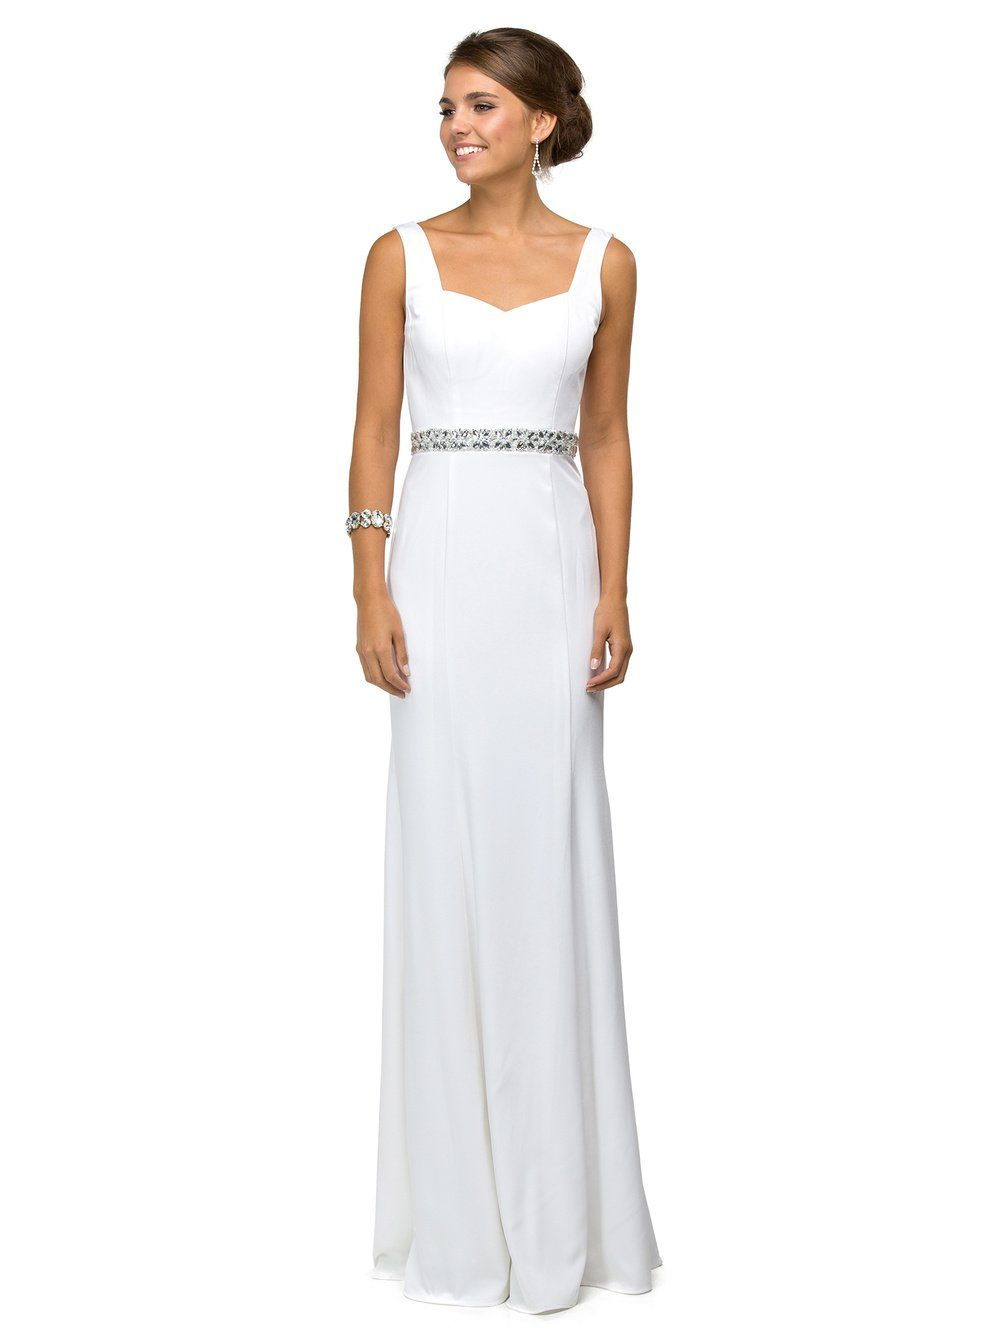 fitted Casual wedding dress DQ9487W-Simply Fab Dress